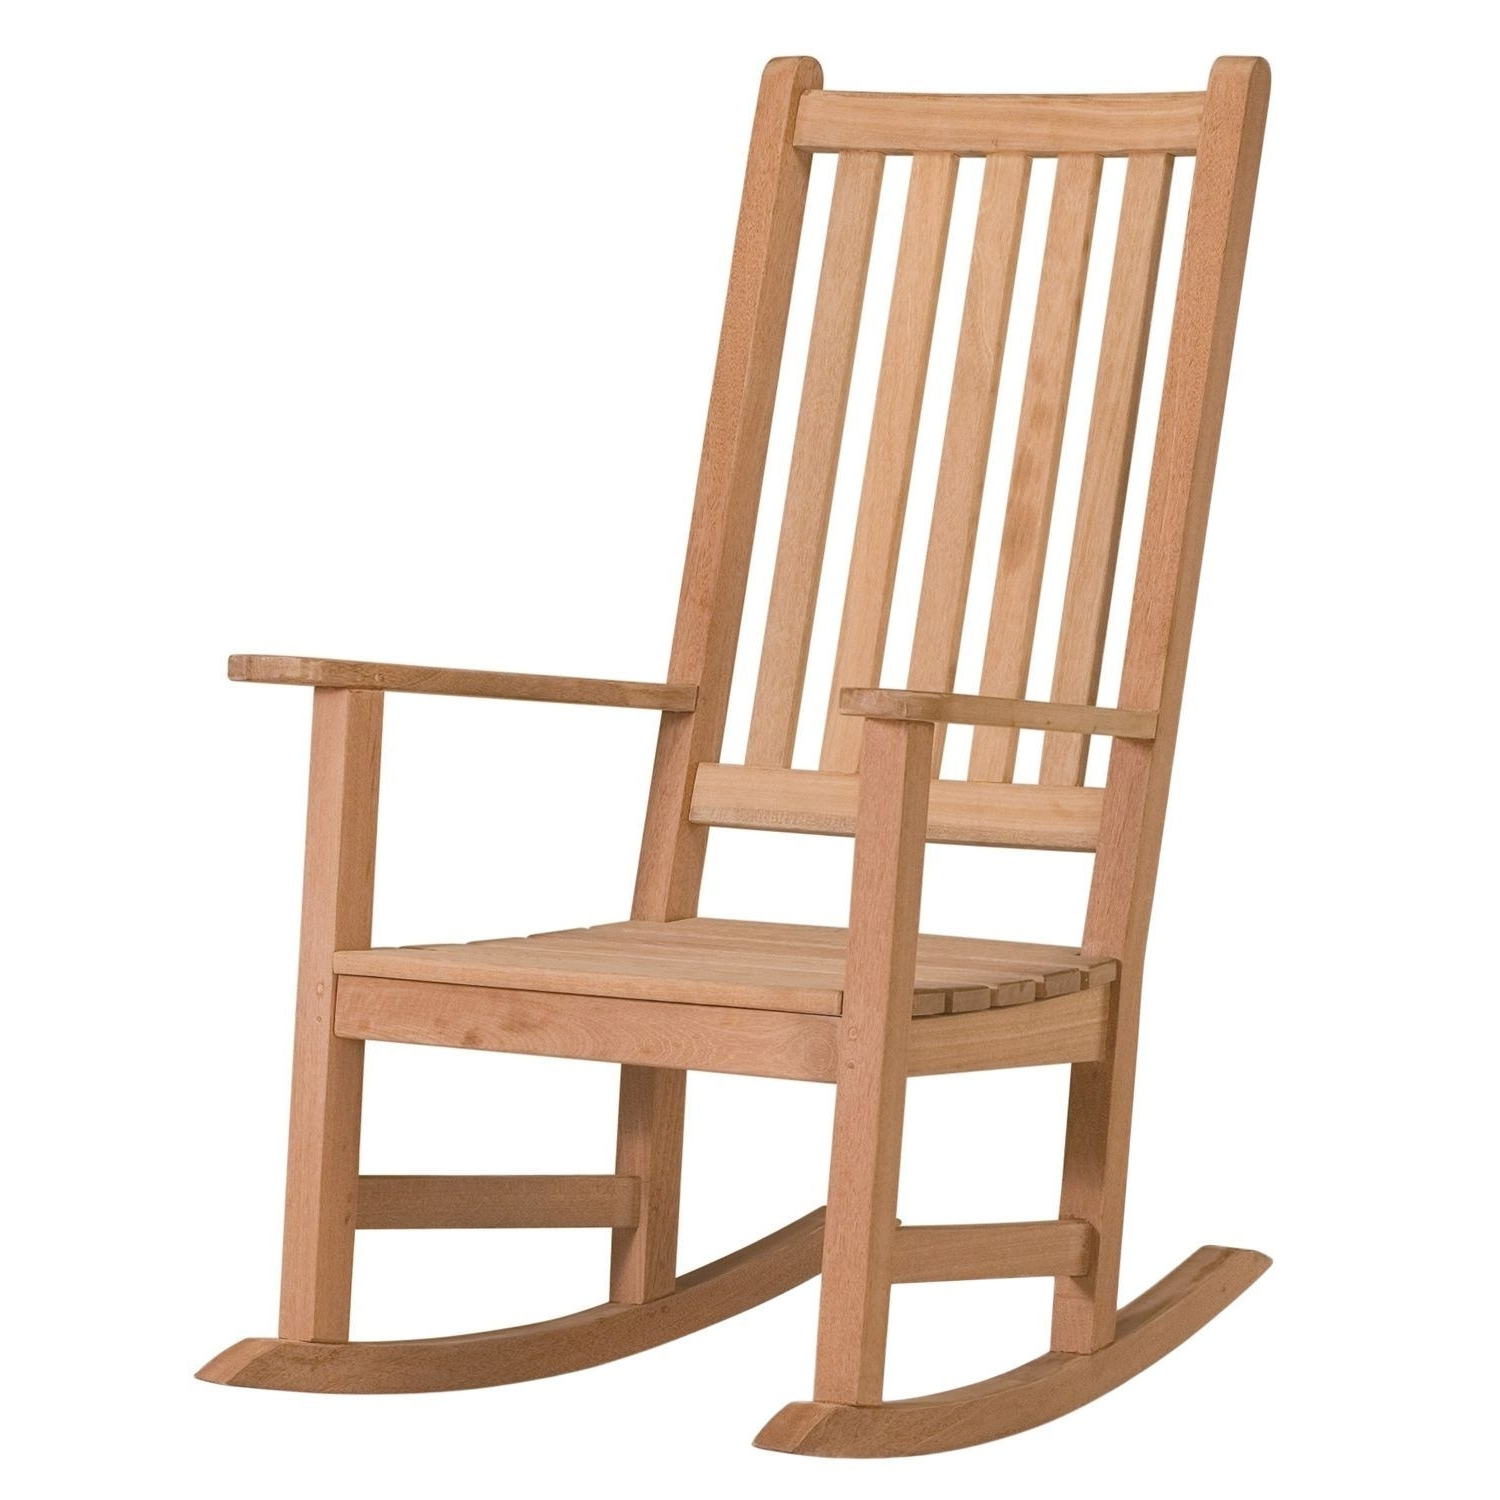 Preferred Oxford Garden Franklin Rocking Chair (Natural), Brown, Size Single With Rocking Chairs For Garden (View 10 of 20)